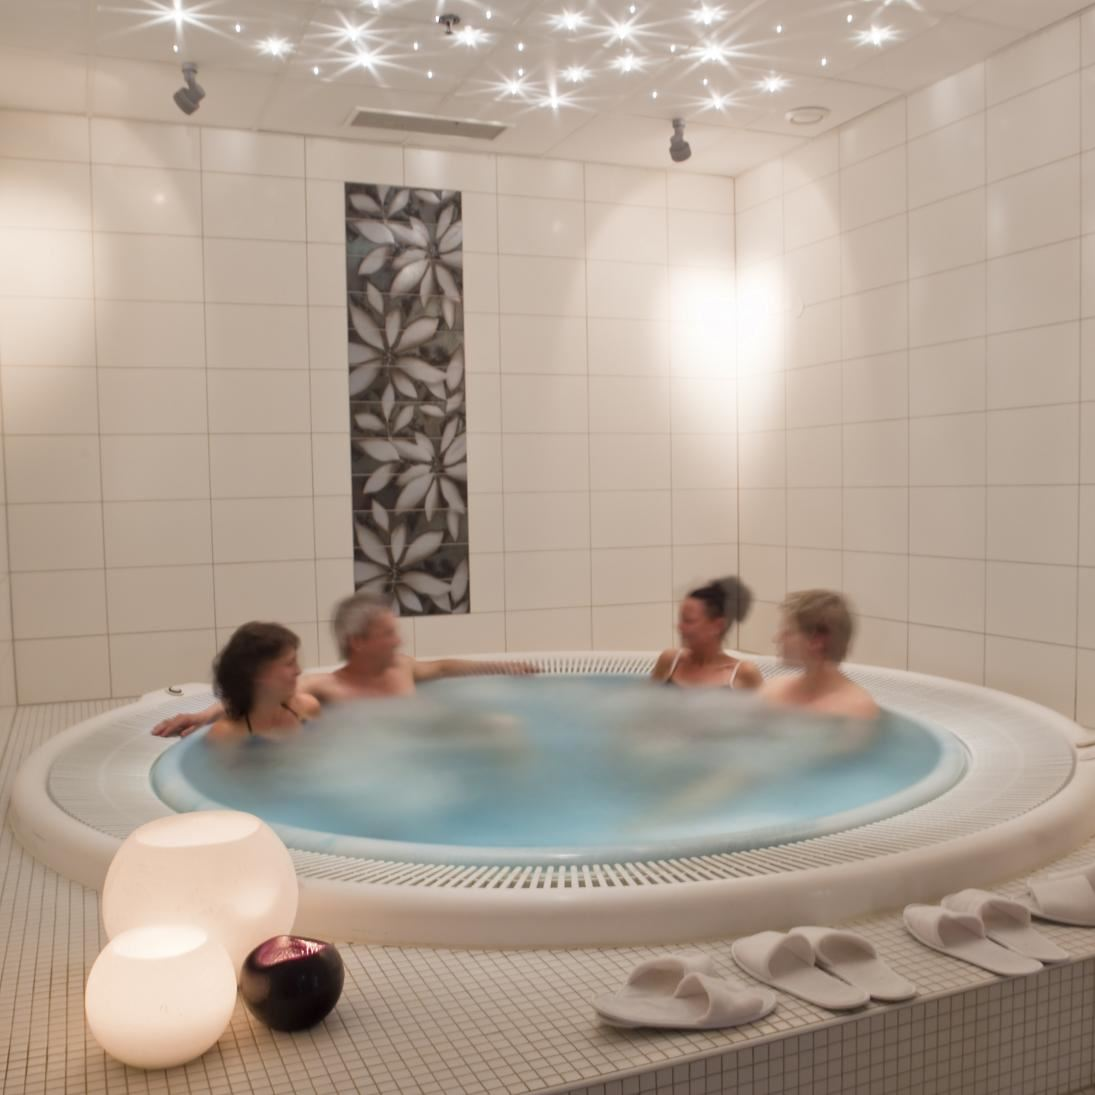 The Spa Resort Mösseberg, Falköping